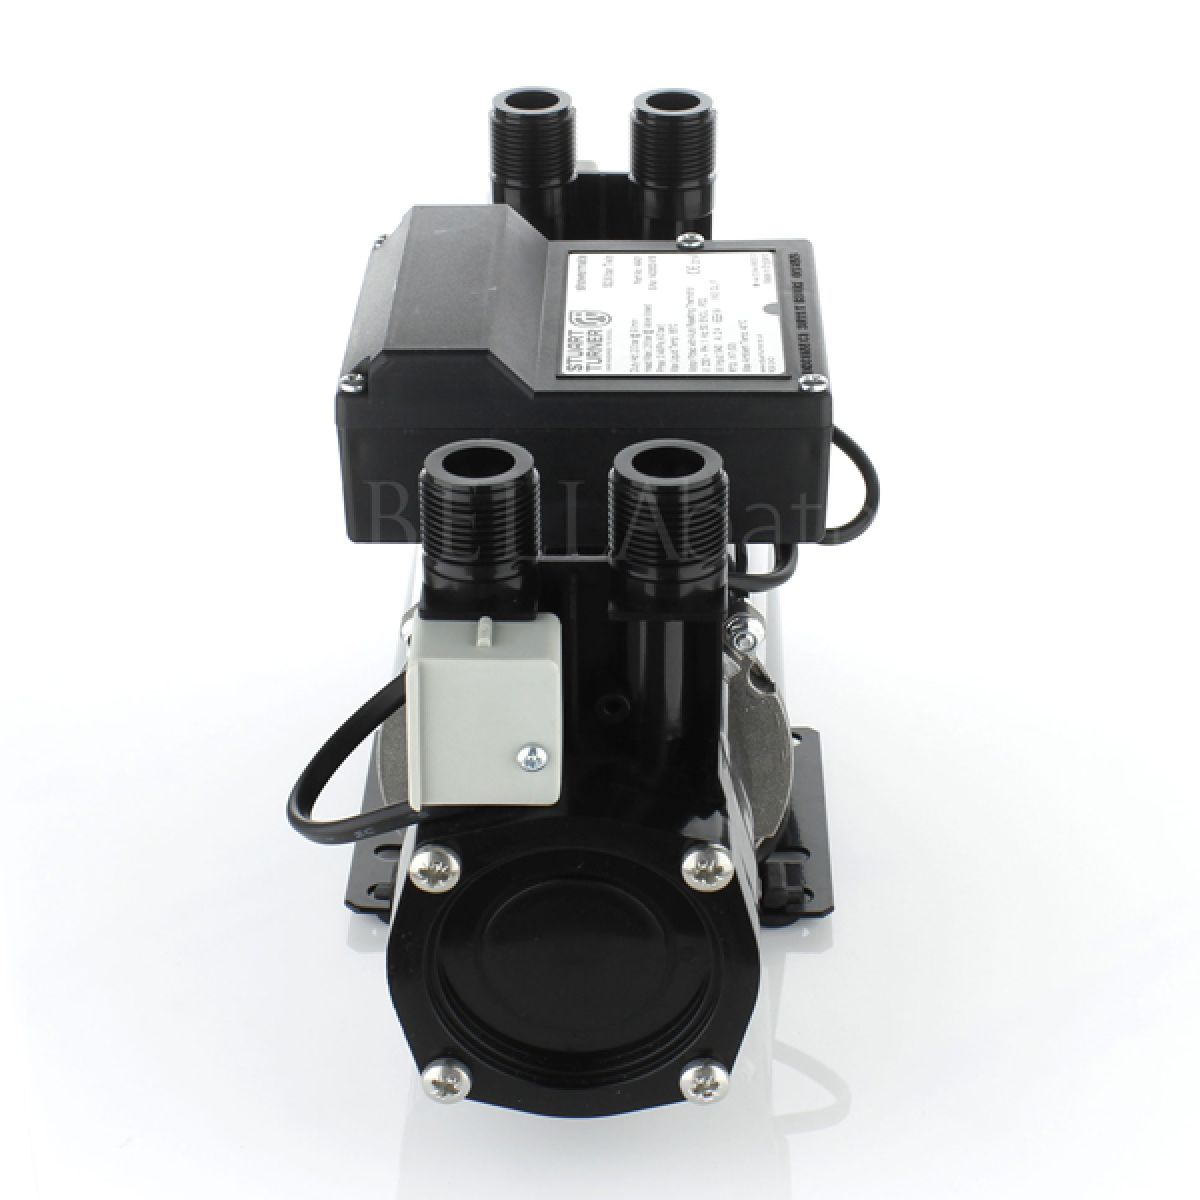 Stuart Turner 46431 Showermate Standard Twin 2.6 Bar Pump Left